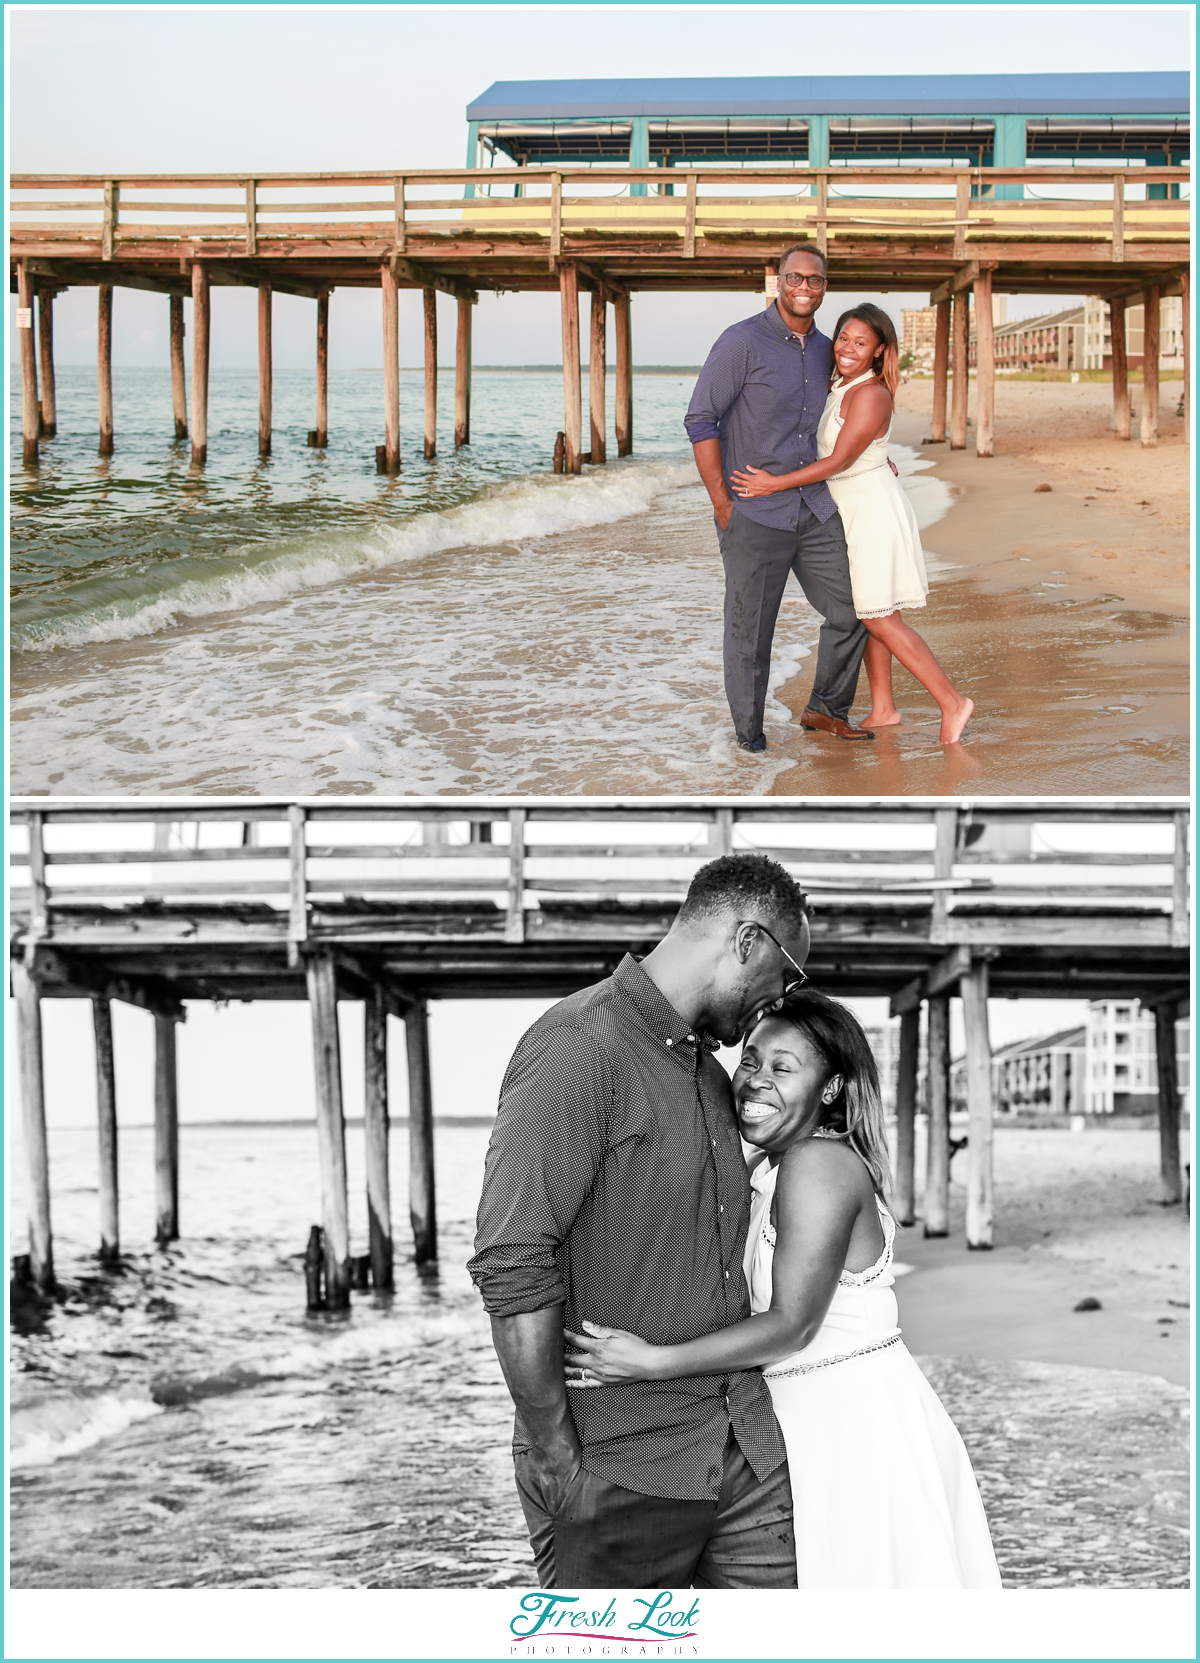 vow renewal photo shoot